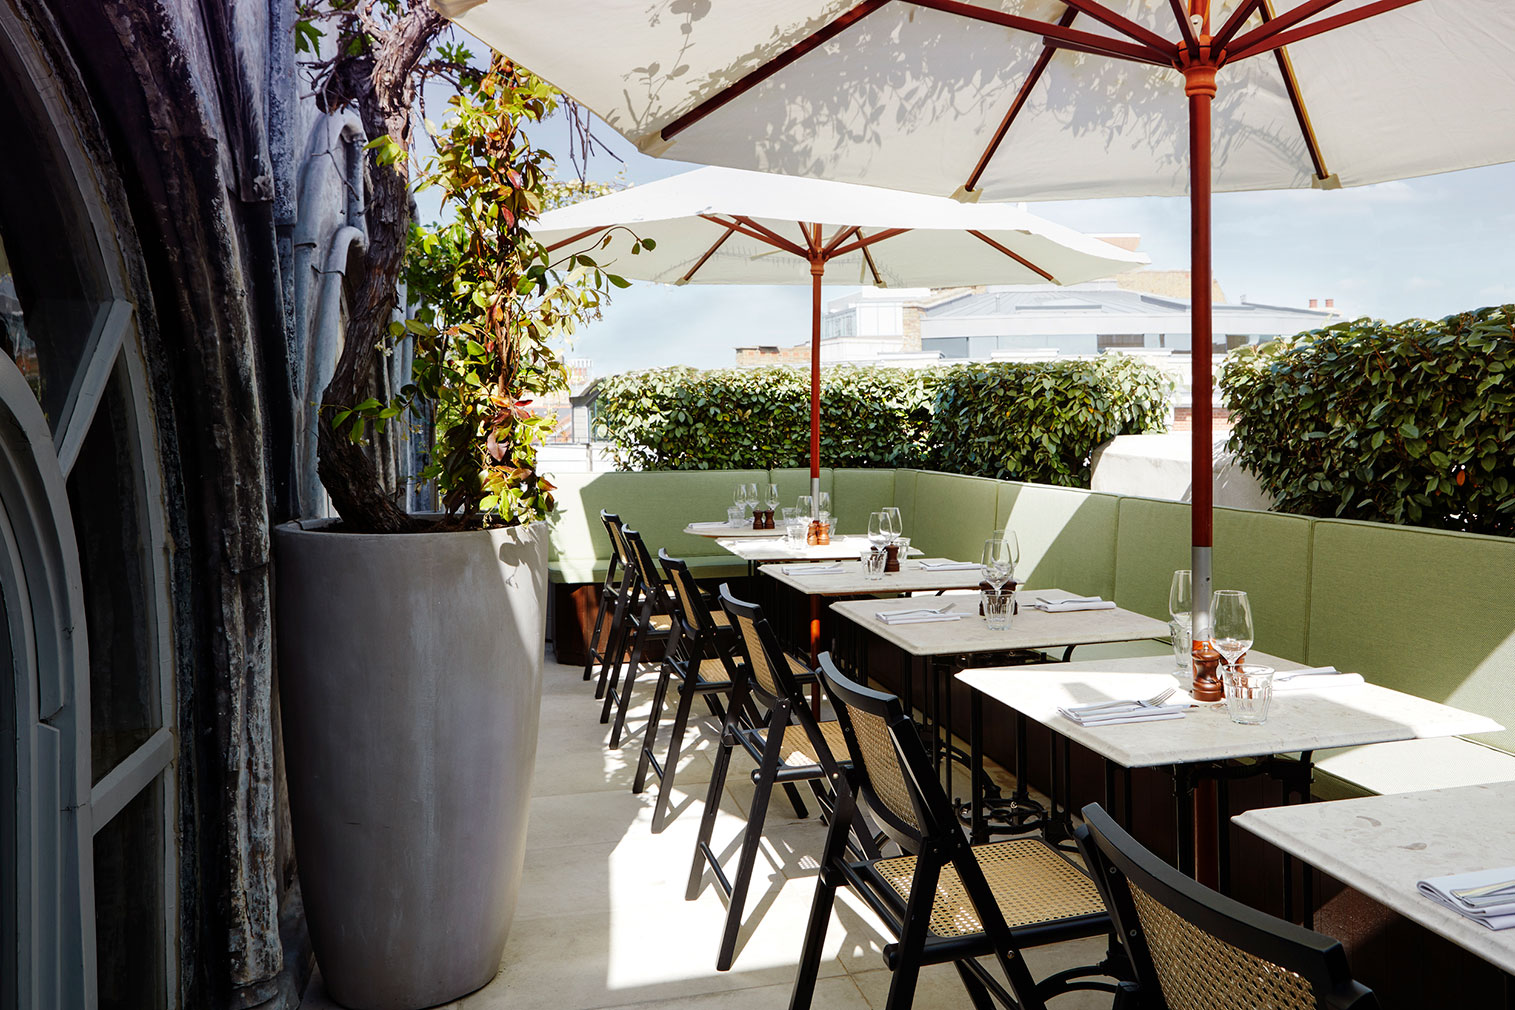 The rooftop dining terrace overlooking Clerkenwell Green